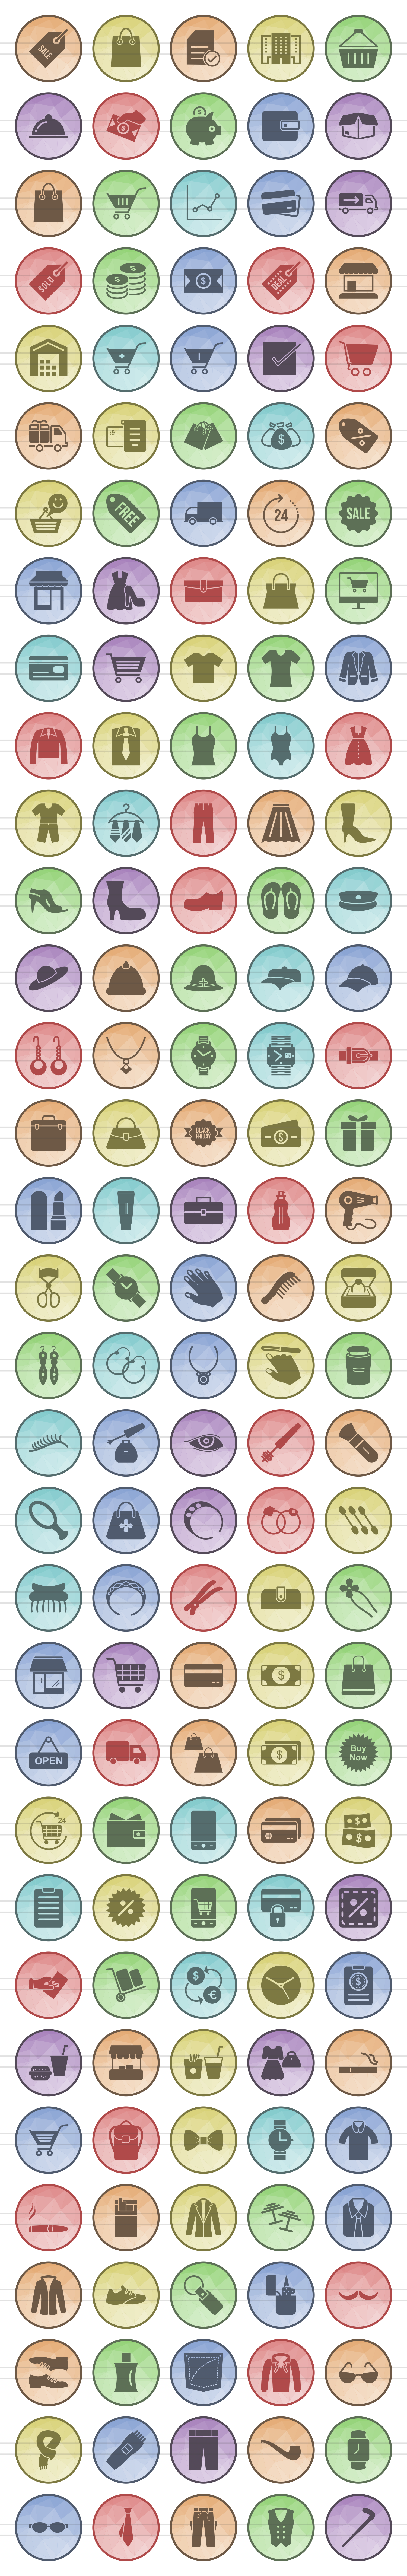 166 Shopping Filled Low Poly Icons example image 2